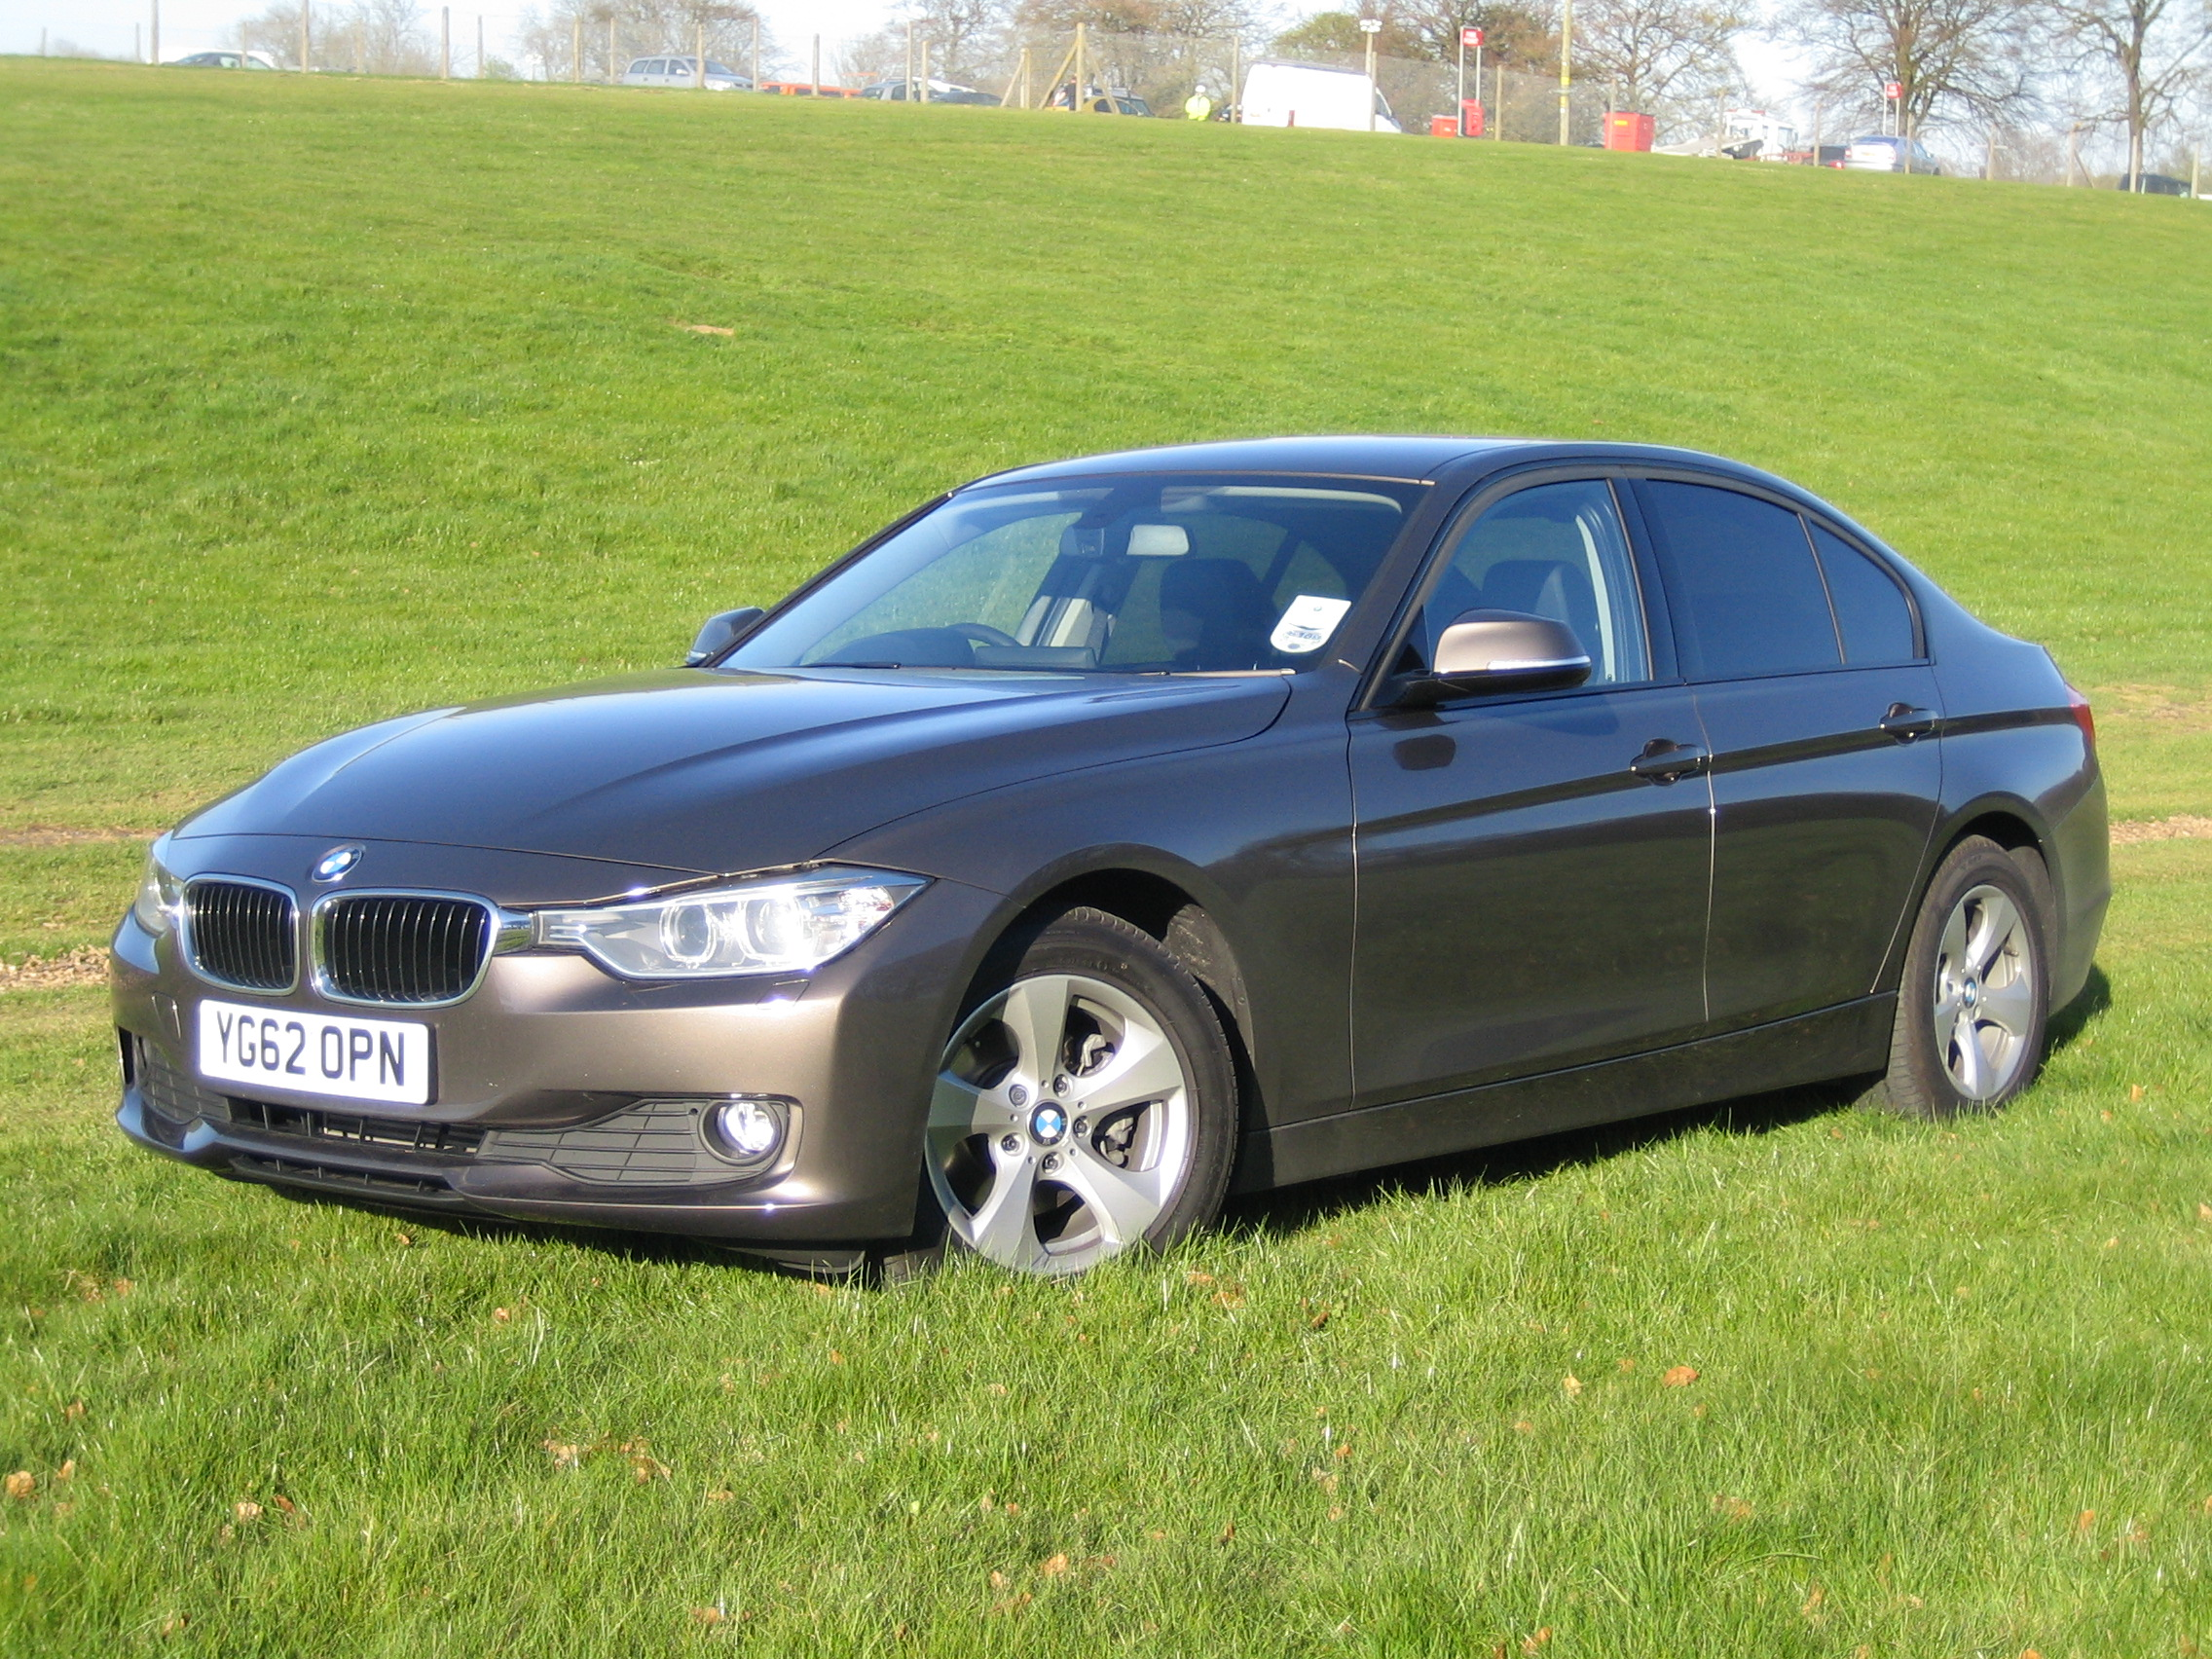 bmw 320d efficient dynamics is better than the 3 pots